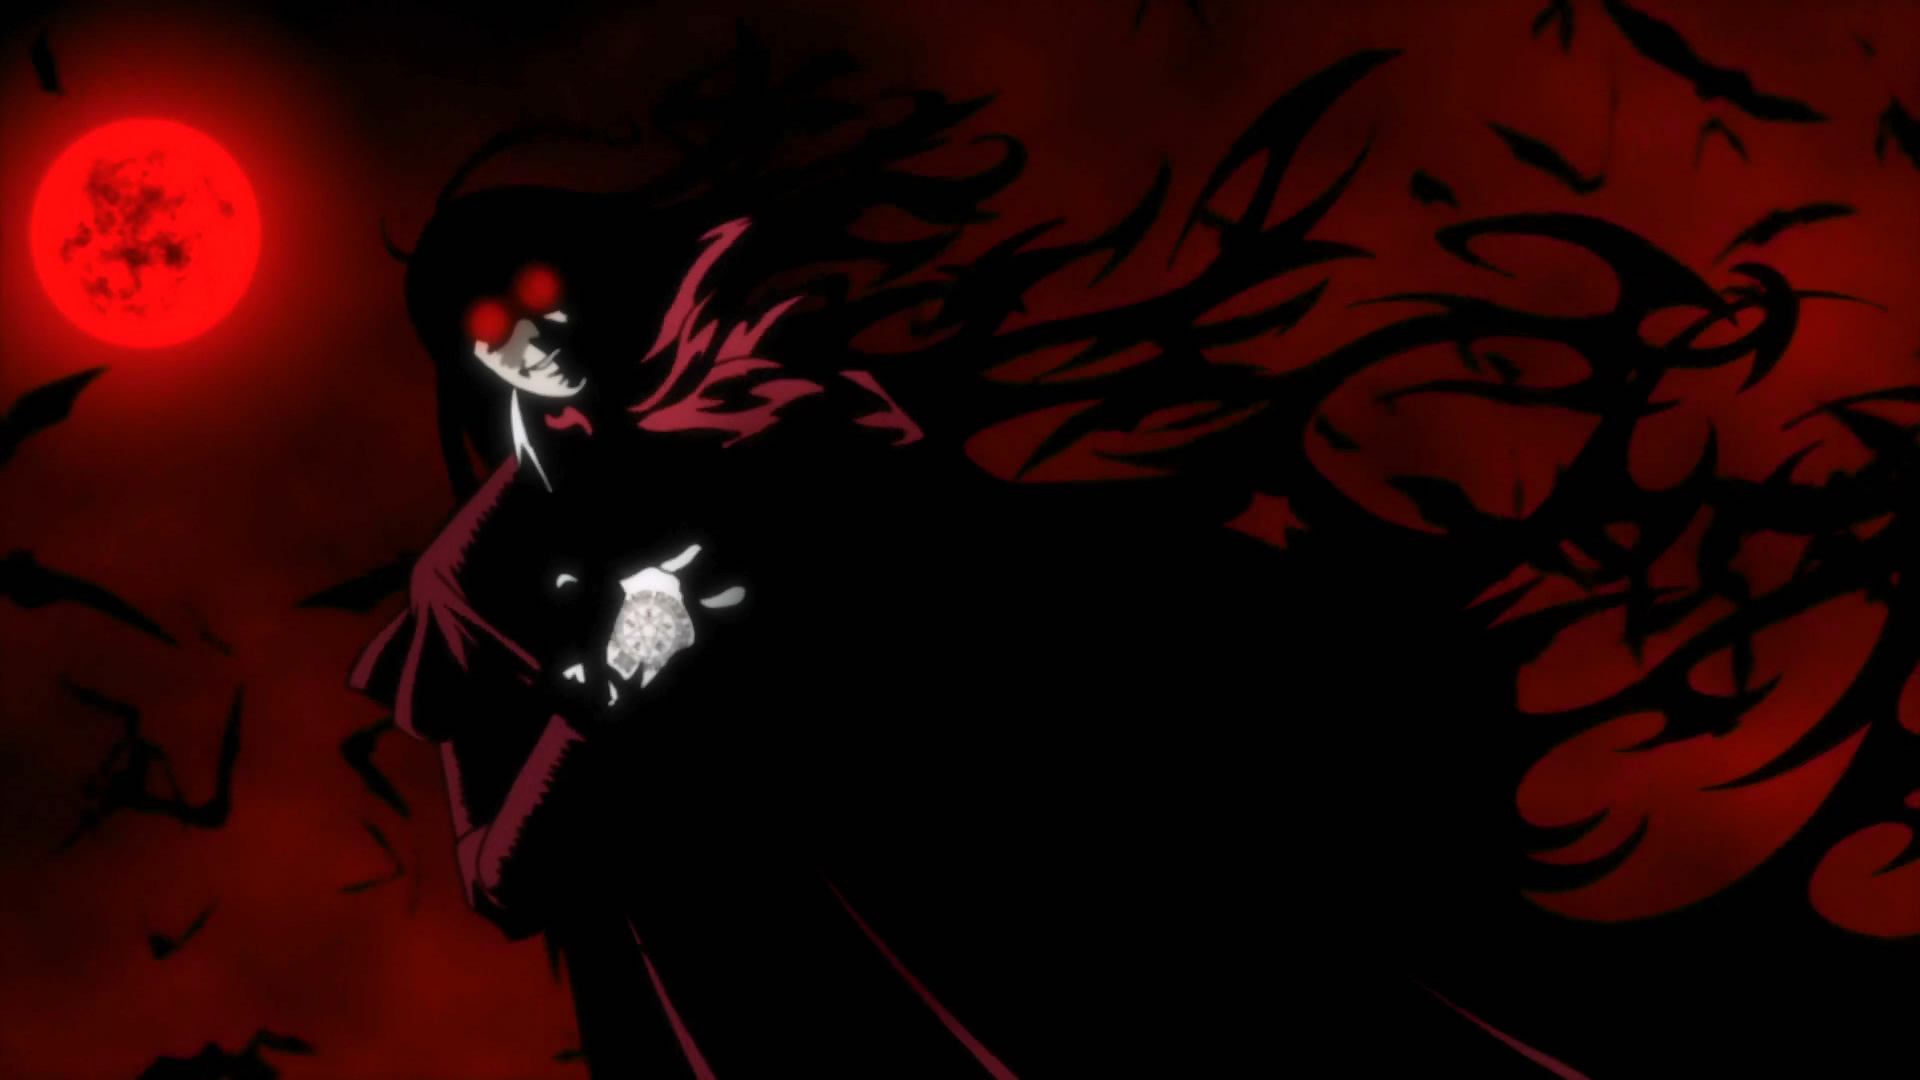 Hellsing Ova Wallpapers High Quality